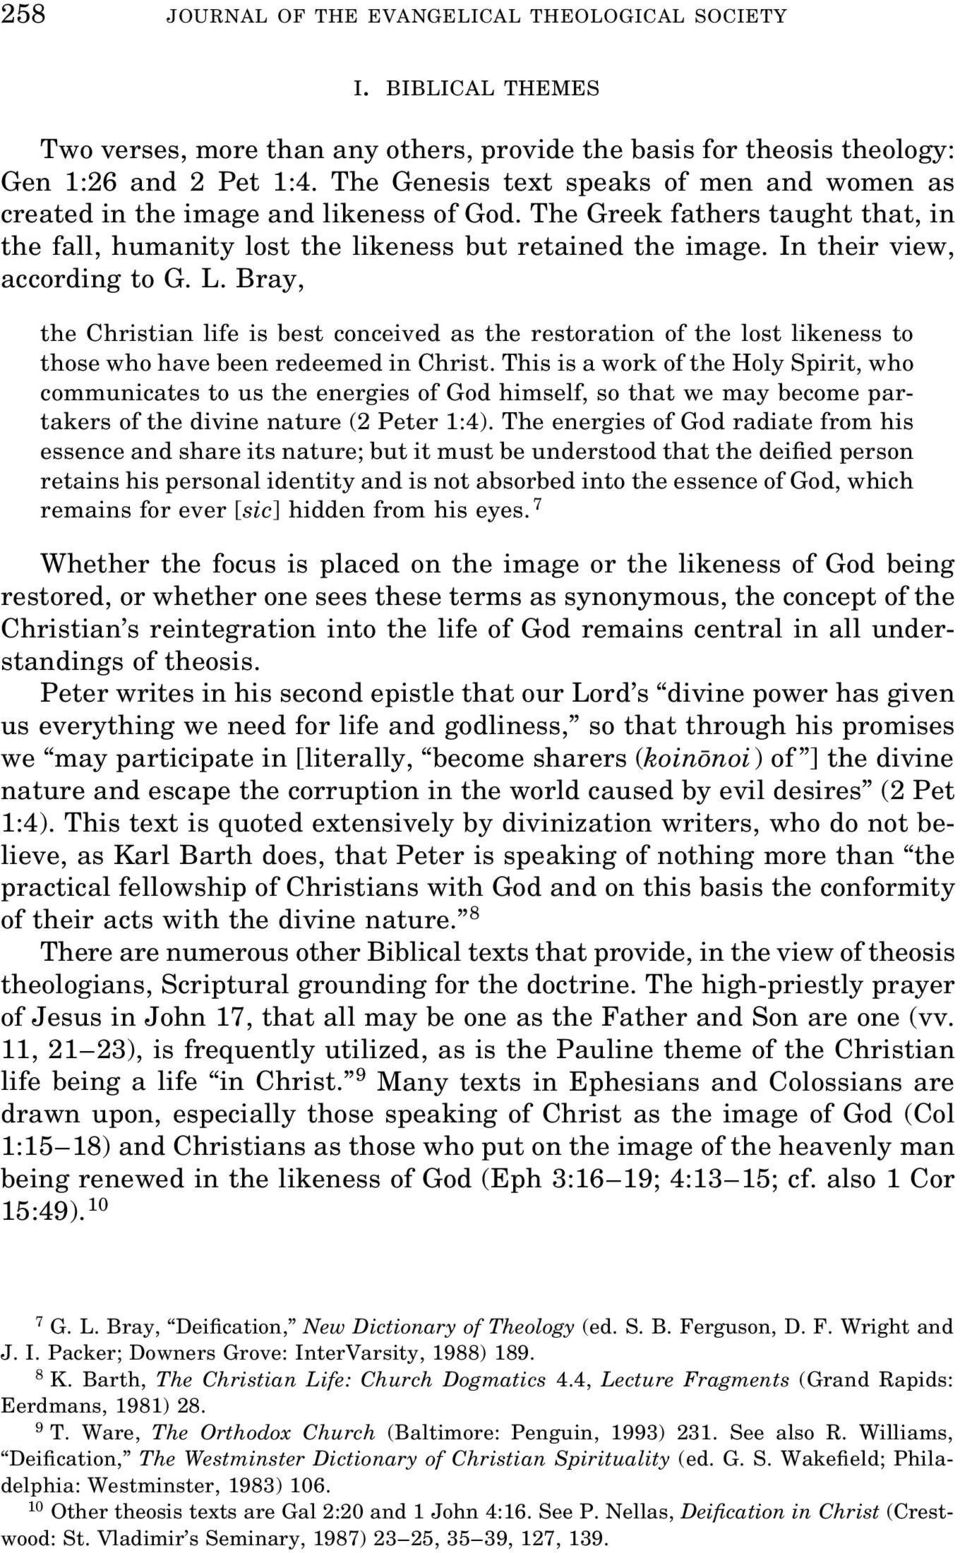 In their view, according to G. L. Bray, the Christian life is best conceived as the restoration of the lost likeness to those who have been redeemed in Christ.